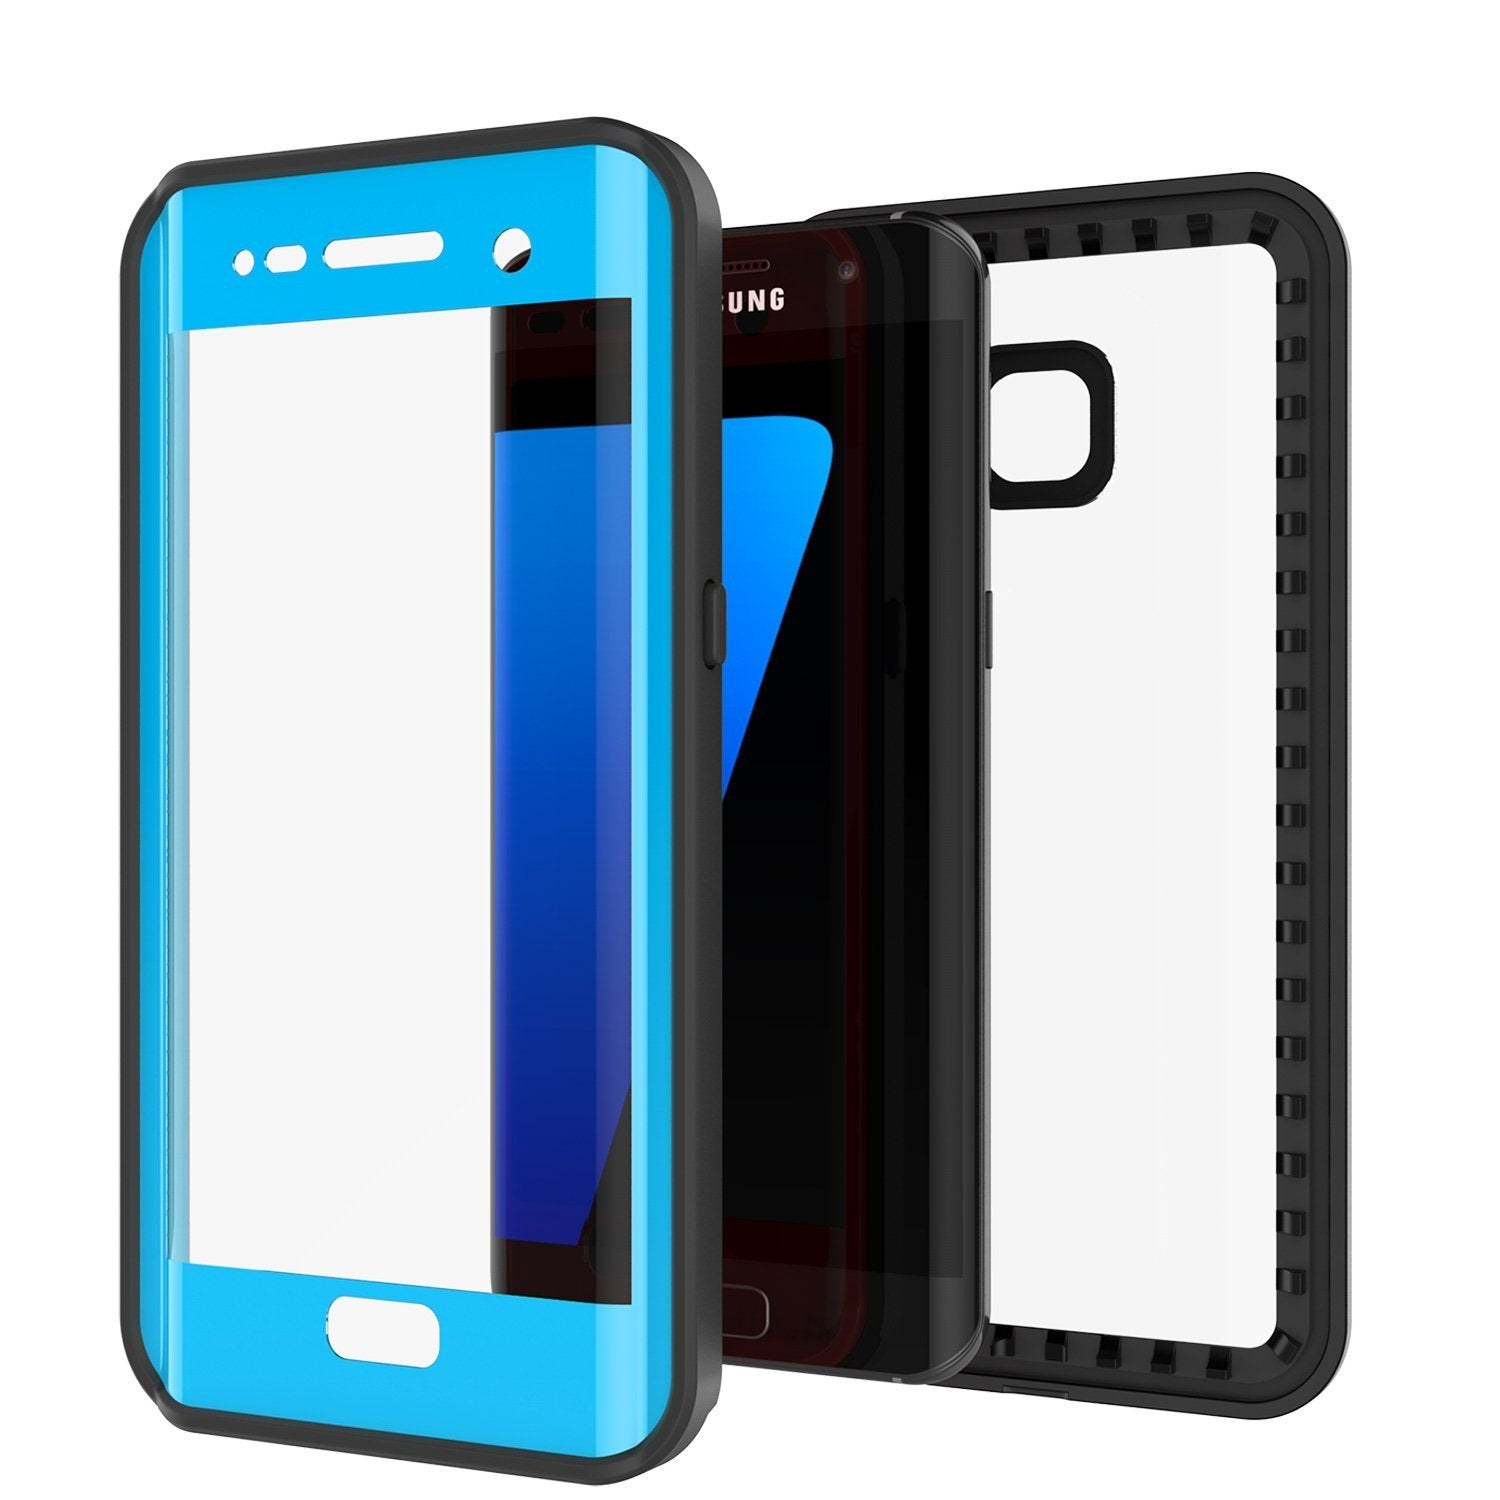 Galaxy S7 Edge Waterproof Case, Punkcase [Extreme Series] [Slim Fit] [IP68 Certified] [Shockproof] [Snowproof] [Dirproof] Armor Cover [Light Blue]